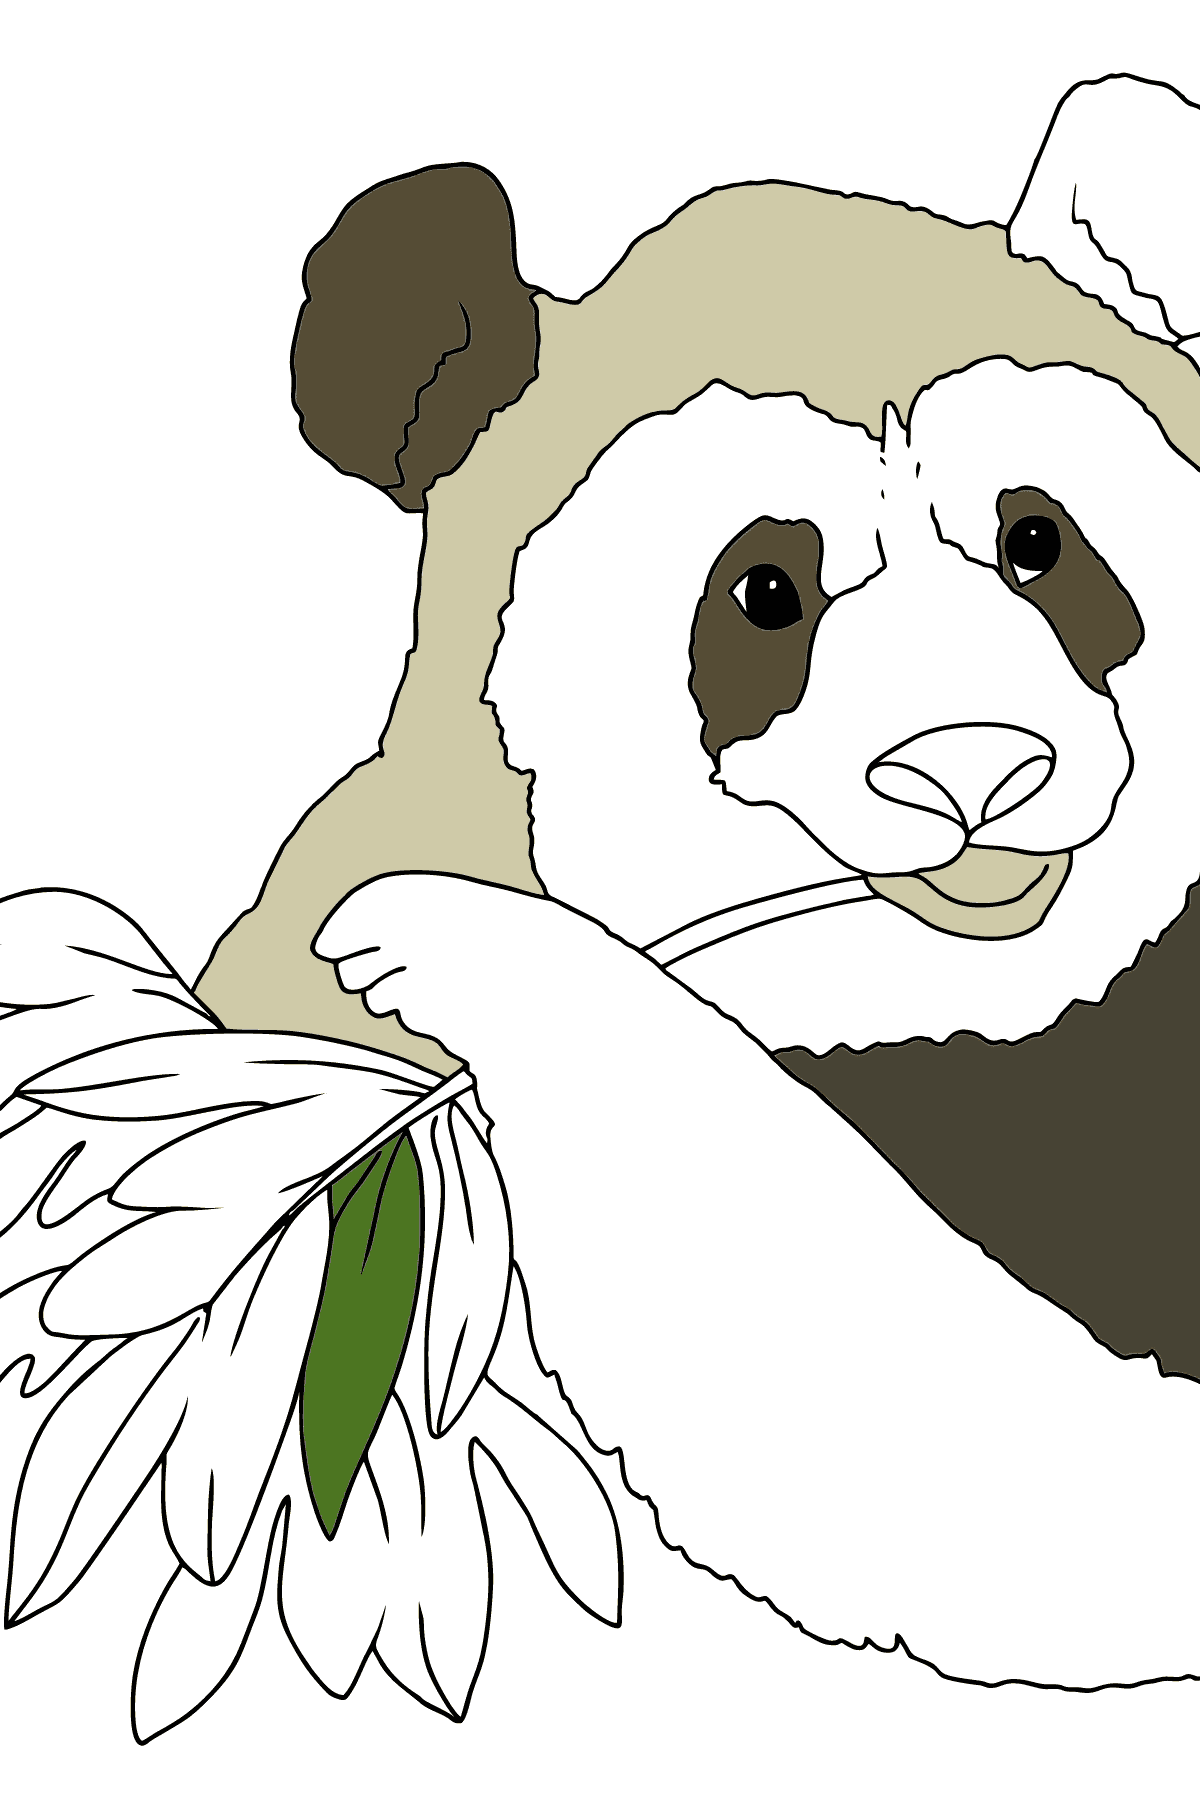 Coloring Page - A Panda is Eating Bamboo Leaves - Coloring Pages for Children